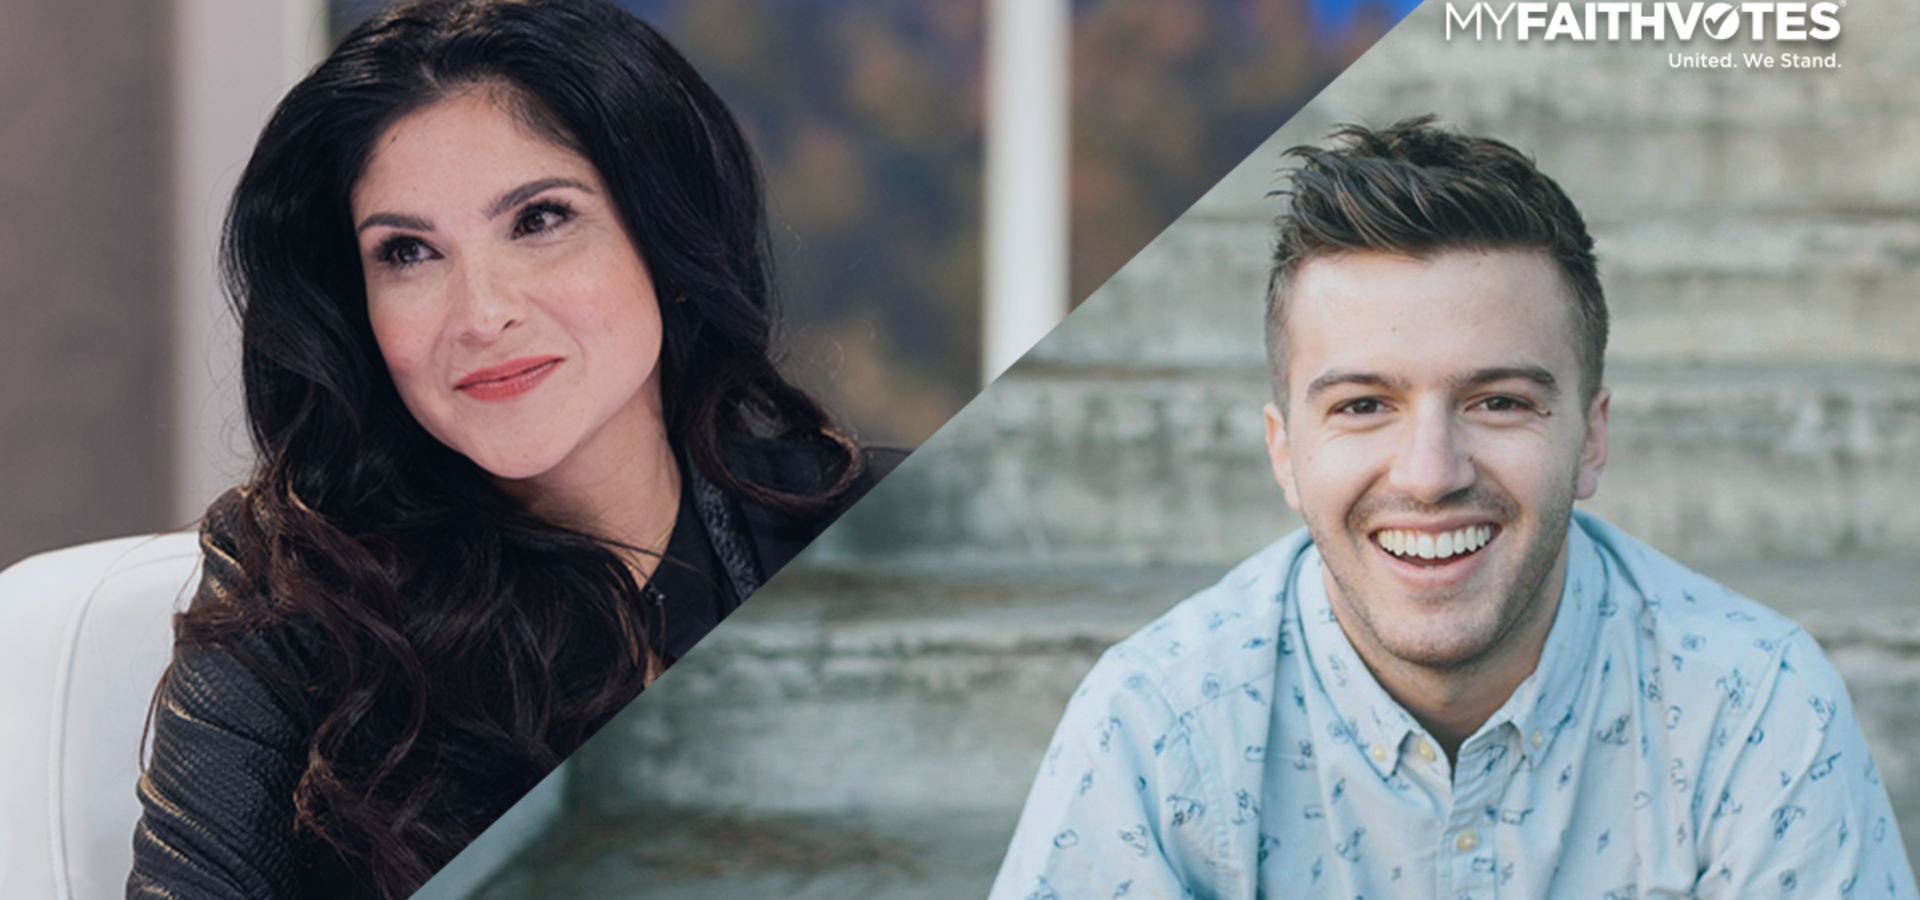 Christian Singers Jaci Velasquez and Evan Craft Help Mobilize Hispanic Christians to Vote